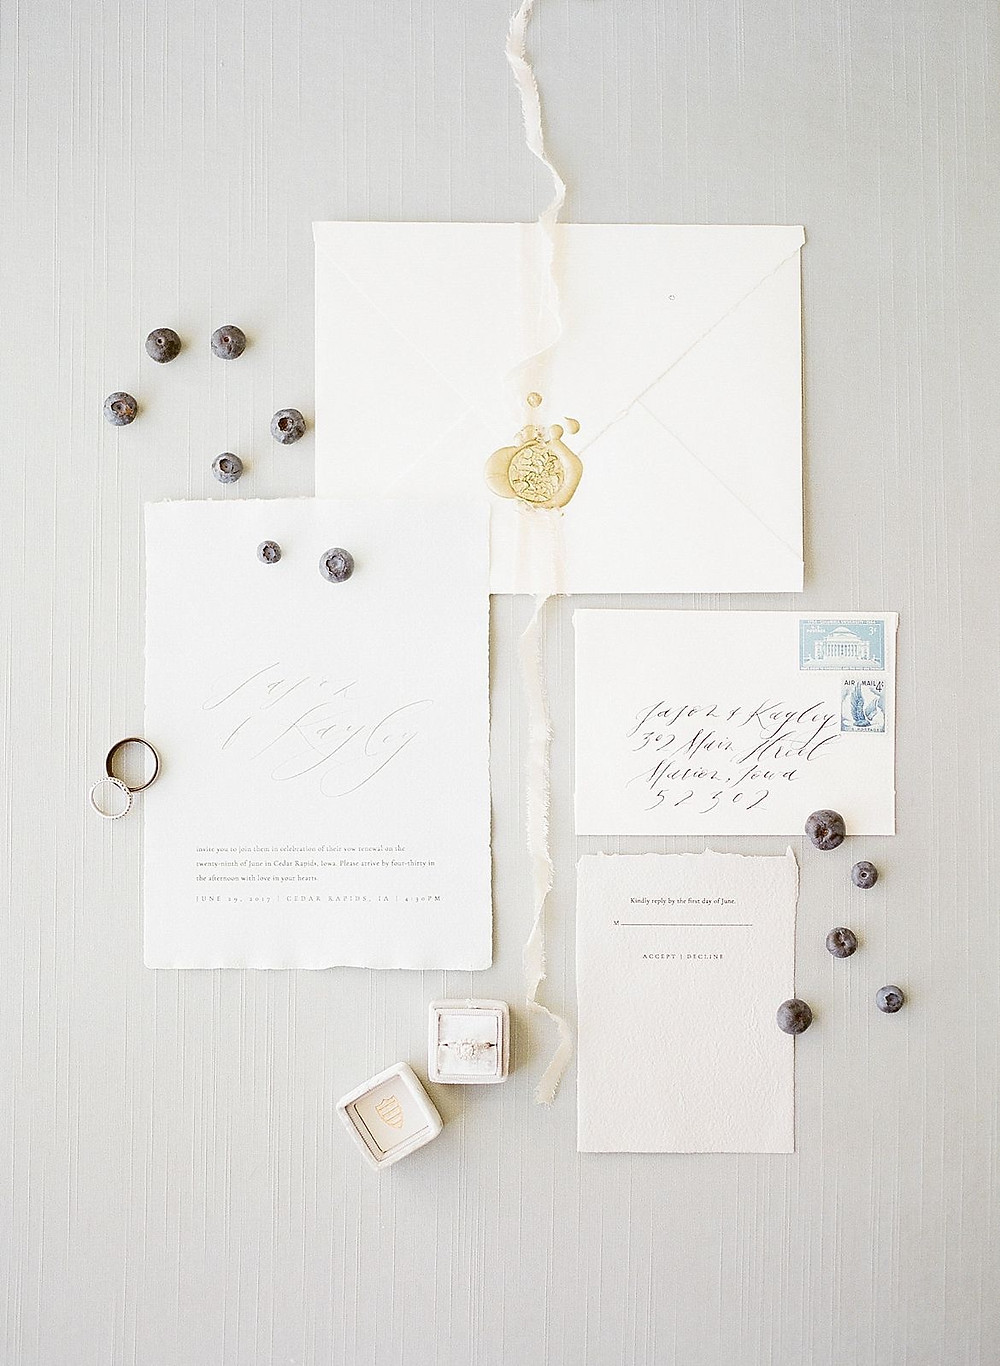 vow renewal calligraphy invitation flatlay with blueberries and wedding rings